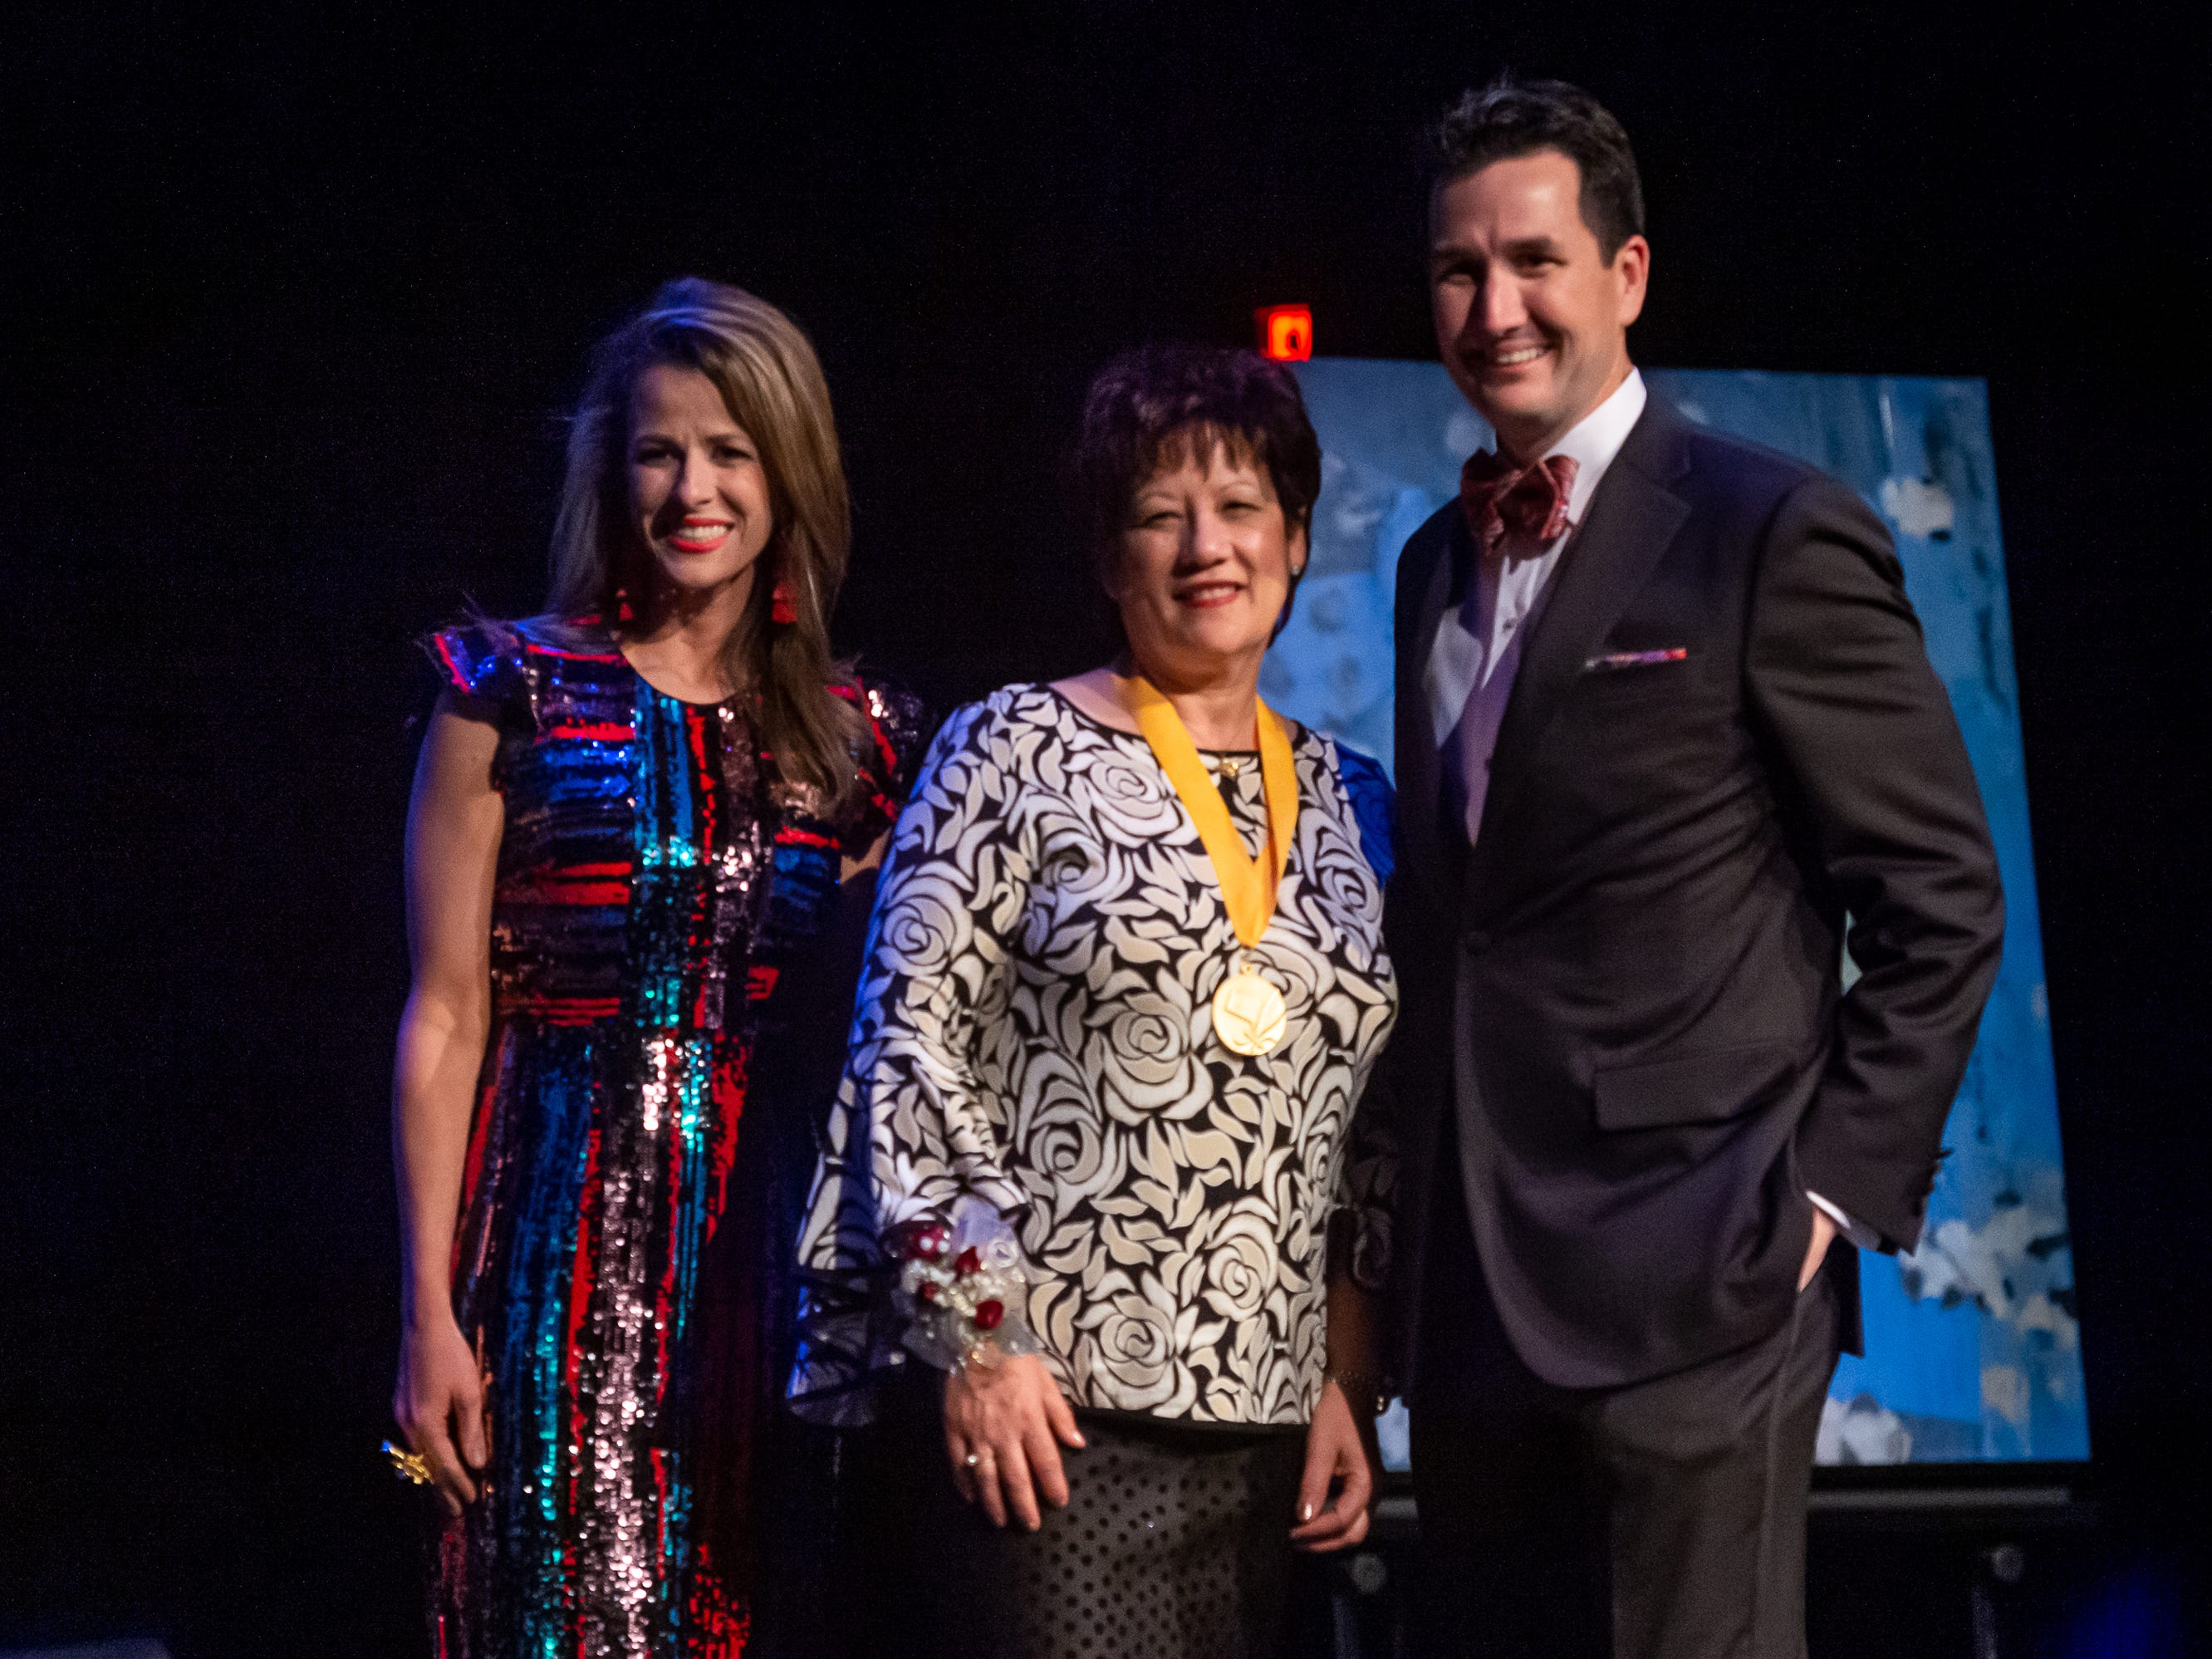 Vergie Banks is presented the Visual Artist Award by Aimee Cotter and Blake David at The 2019 Icon Arts & Cultural Awards Gala honoring Acadiana's Legends. Thursday, April 11, 2019.